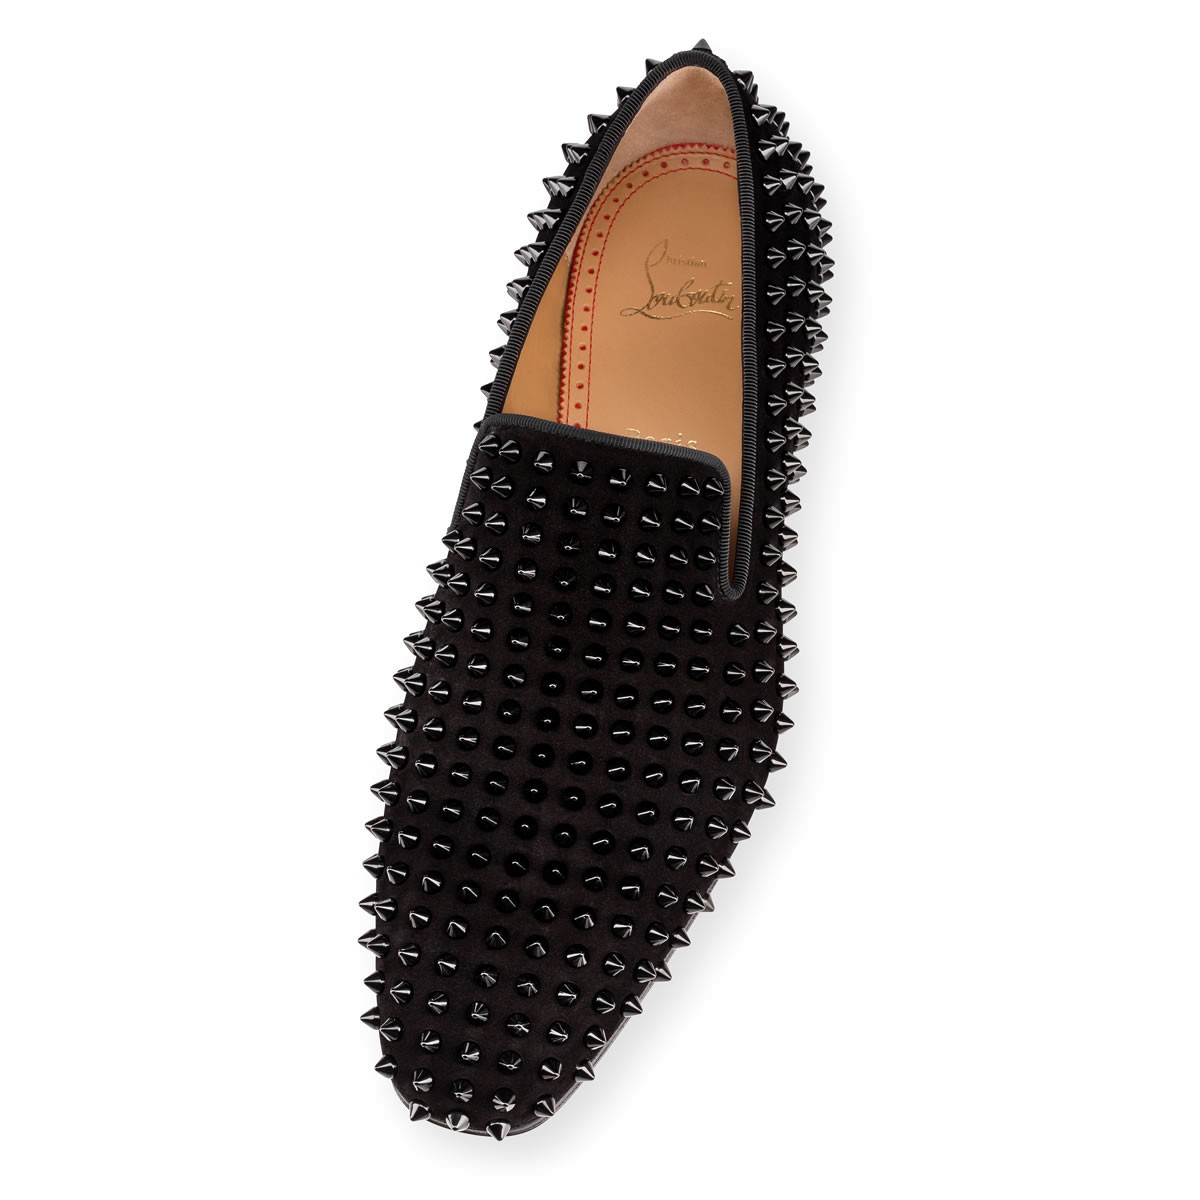 Shoes - Dandelion Spikes - Christian Louboutin